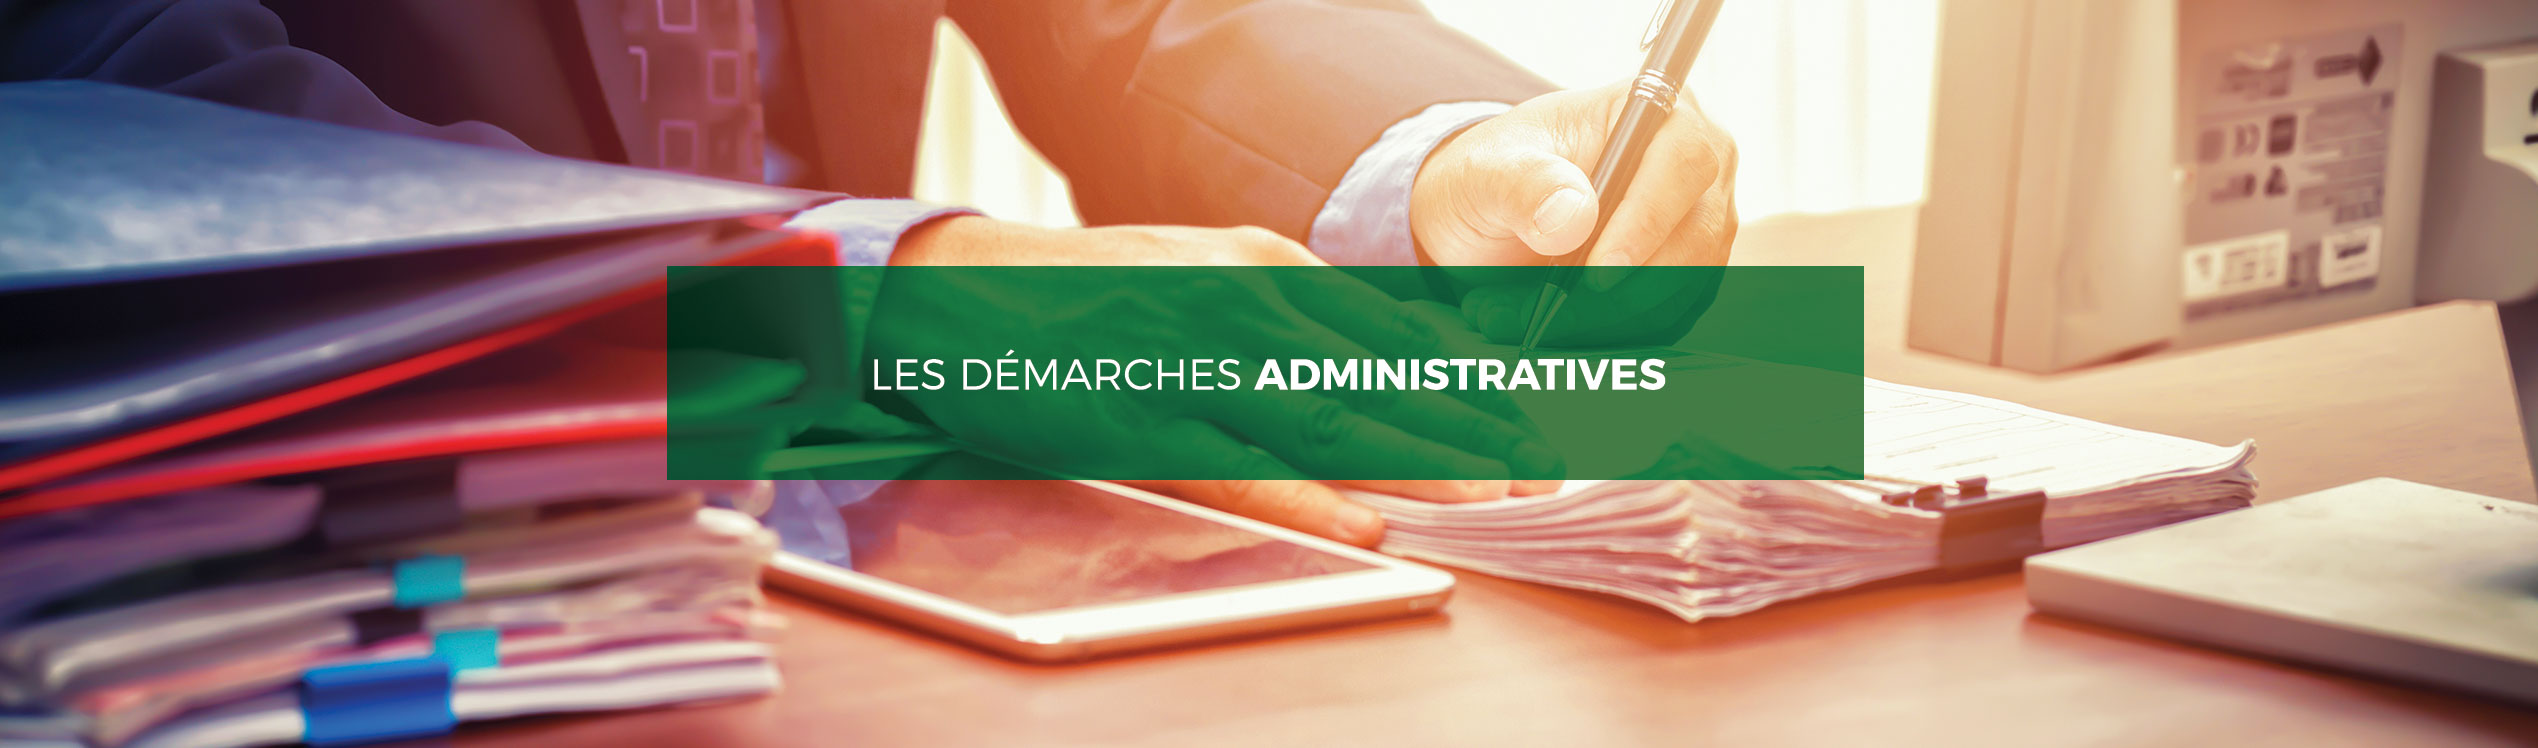 Les demarches administratives